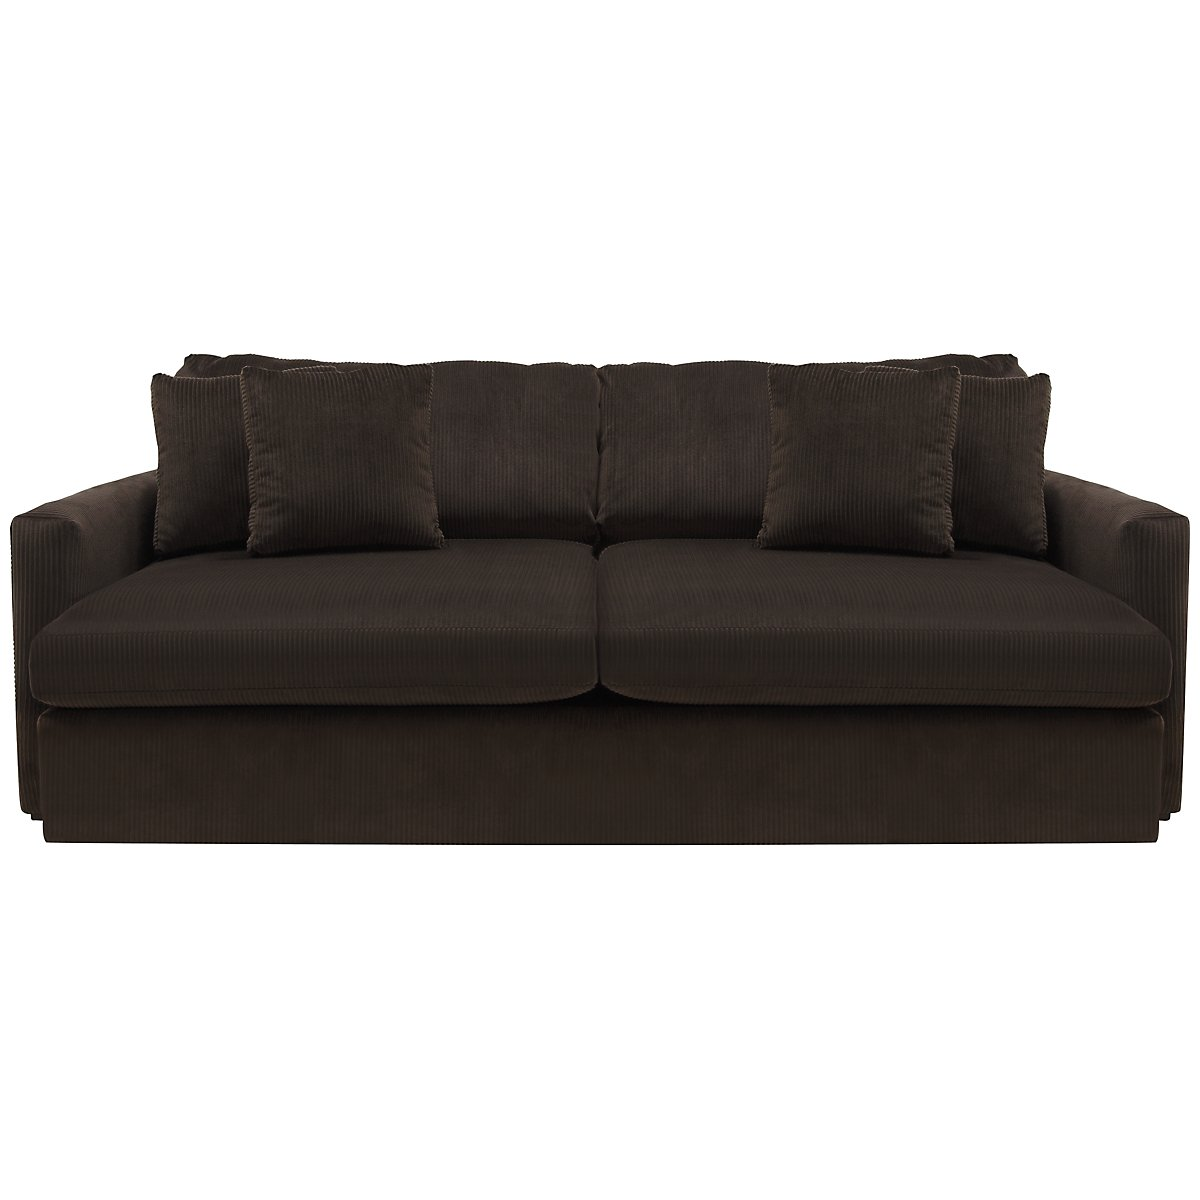 Tara2 Dark Brown Microfiber Sofa